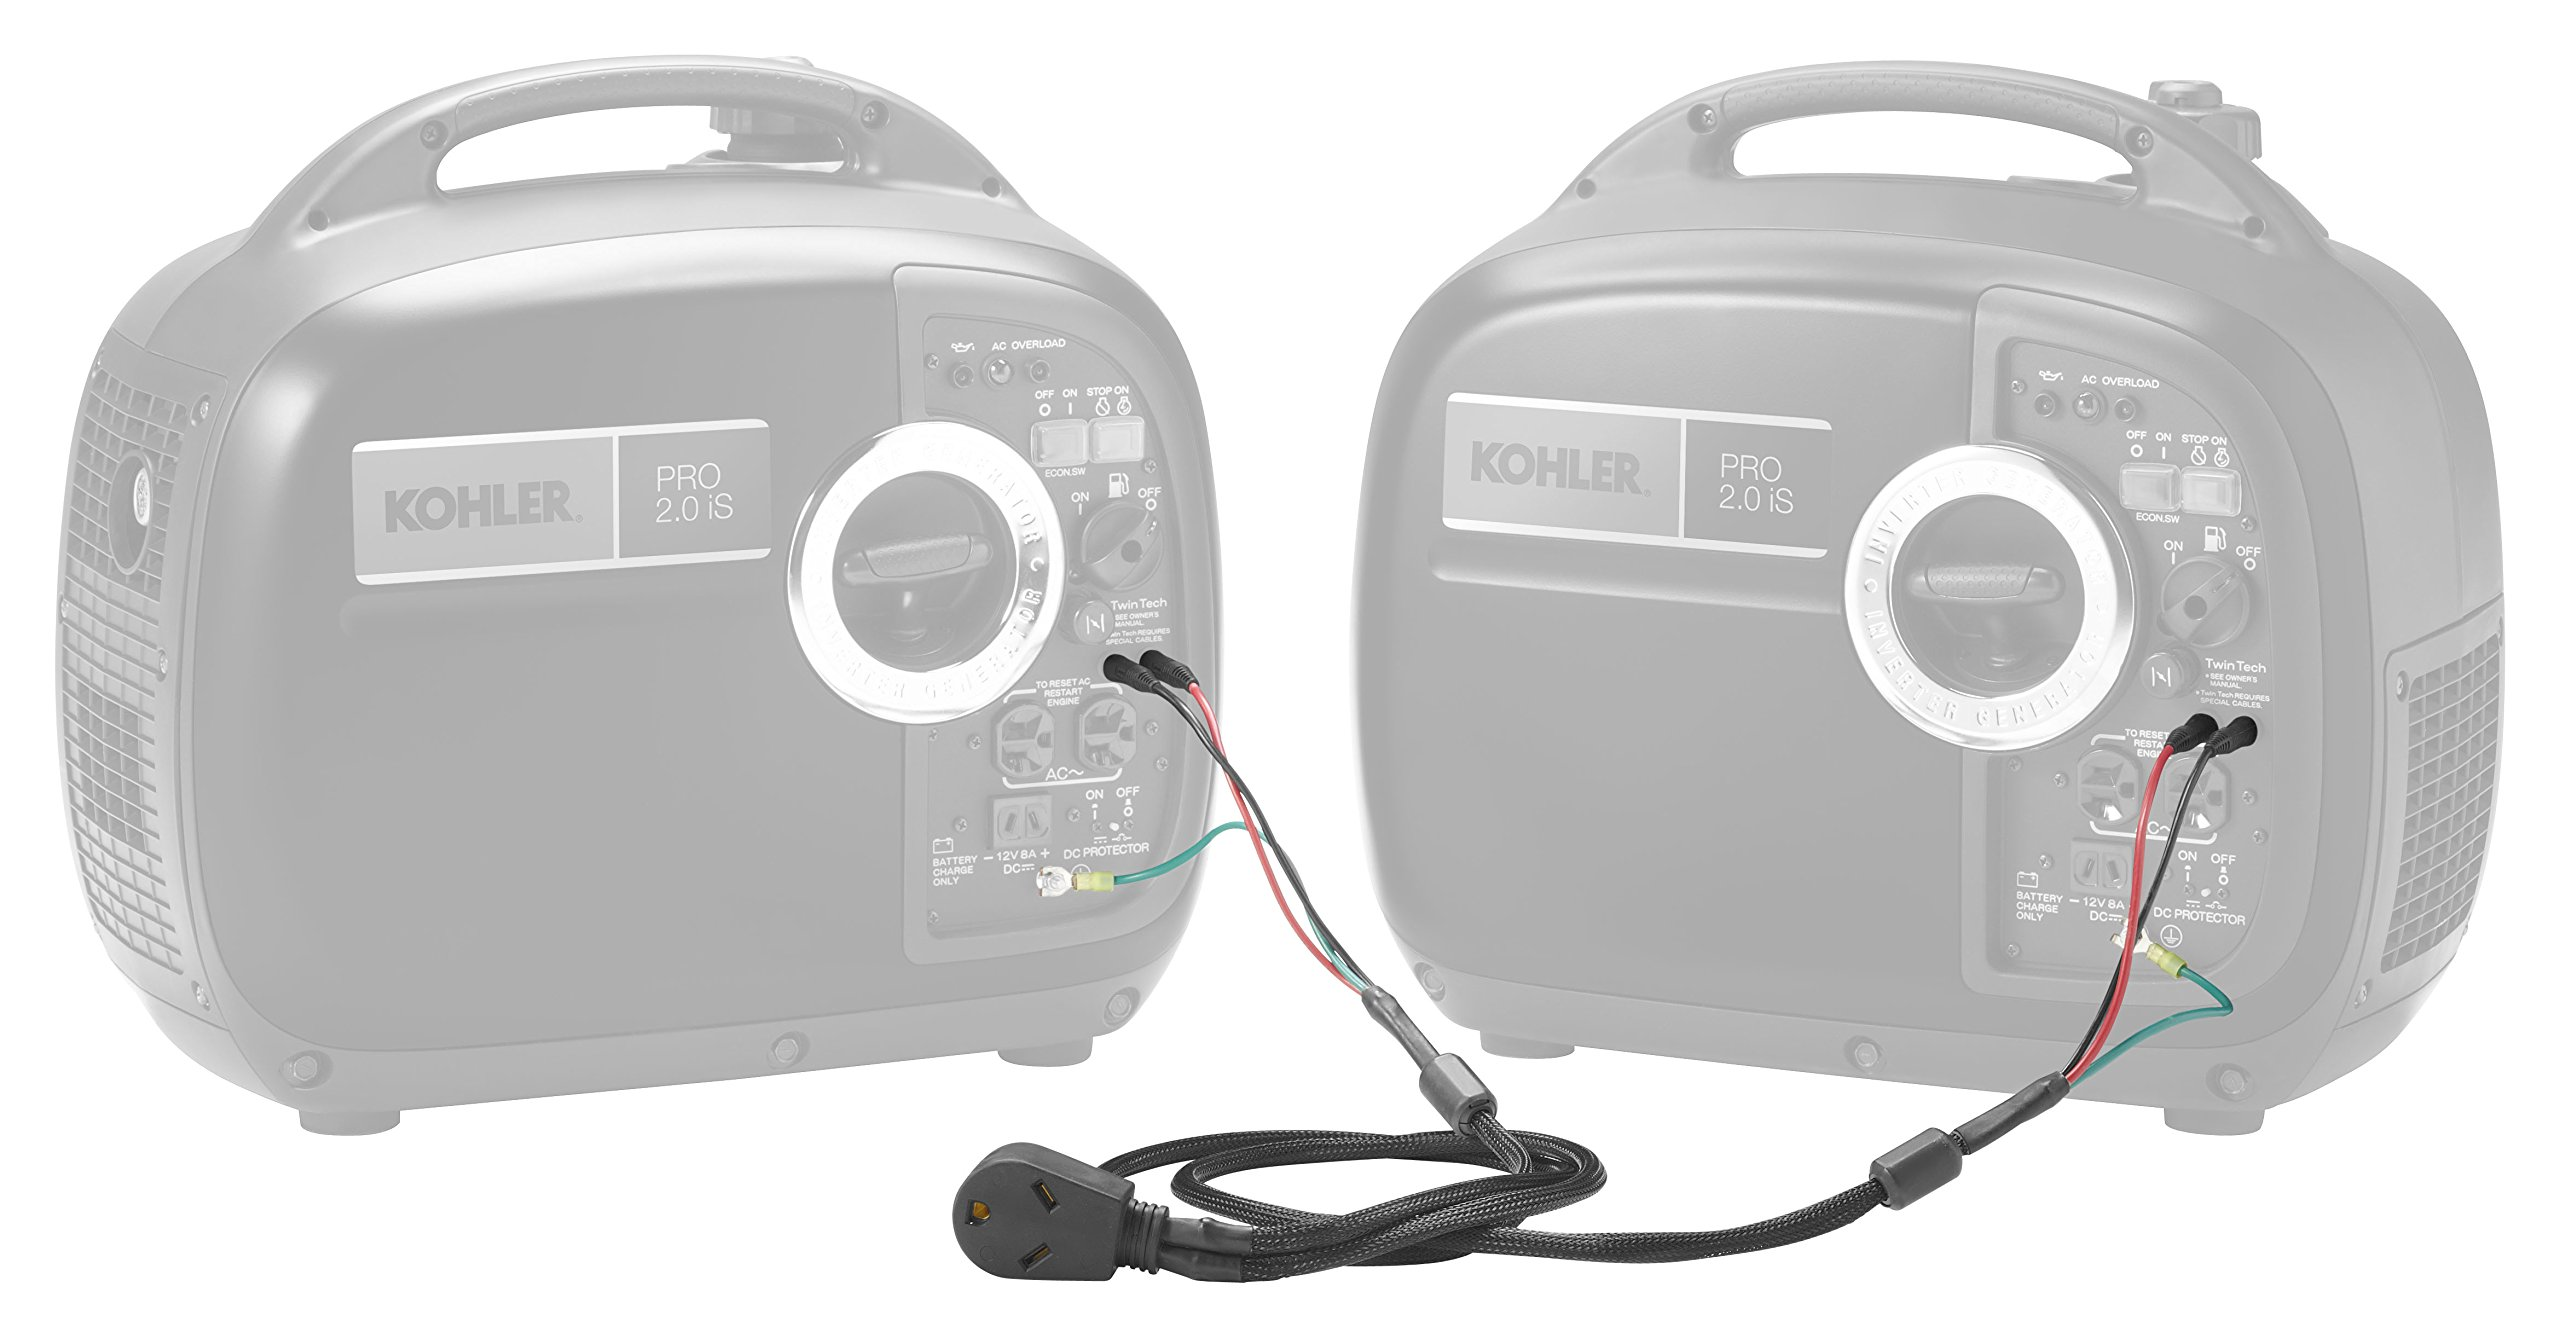 Kohler 33 755 01-S Parallel Kit for Pro2.0Is Inverter Portable Generator with 30 Amp RV Outlet by Kohler (Image #1)